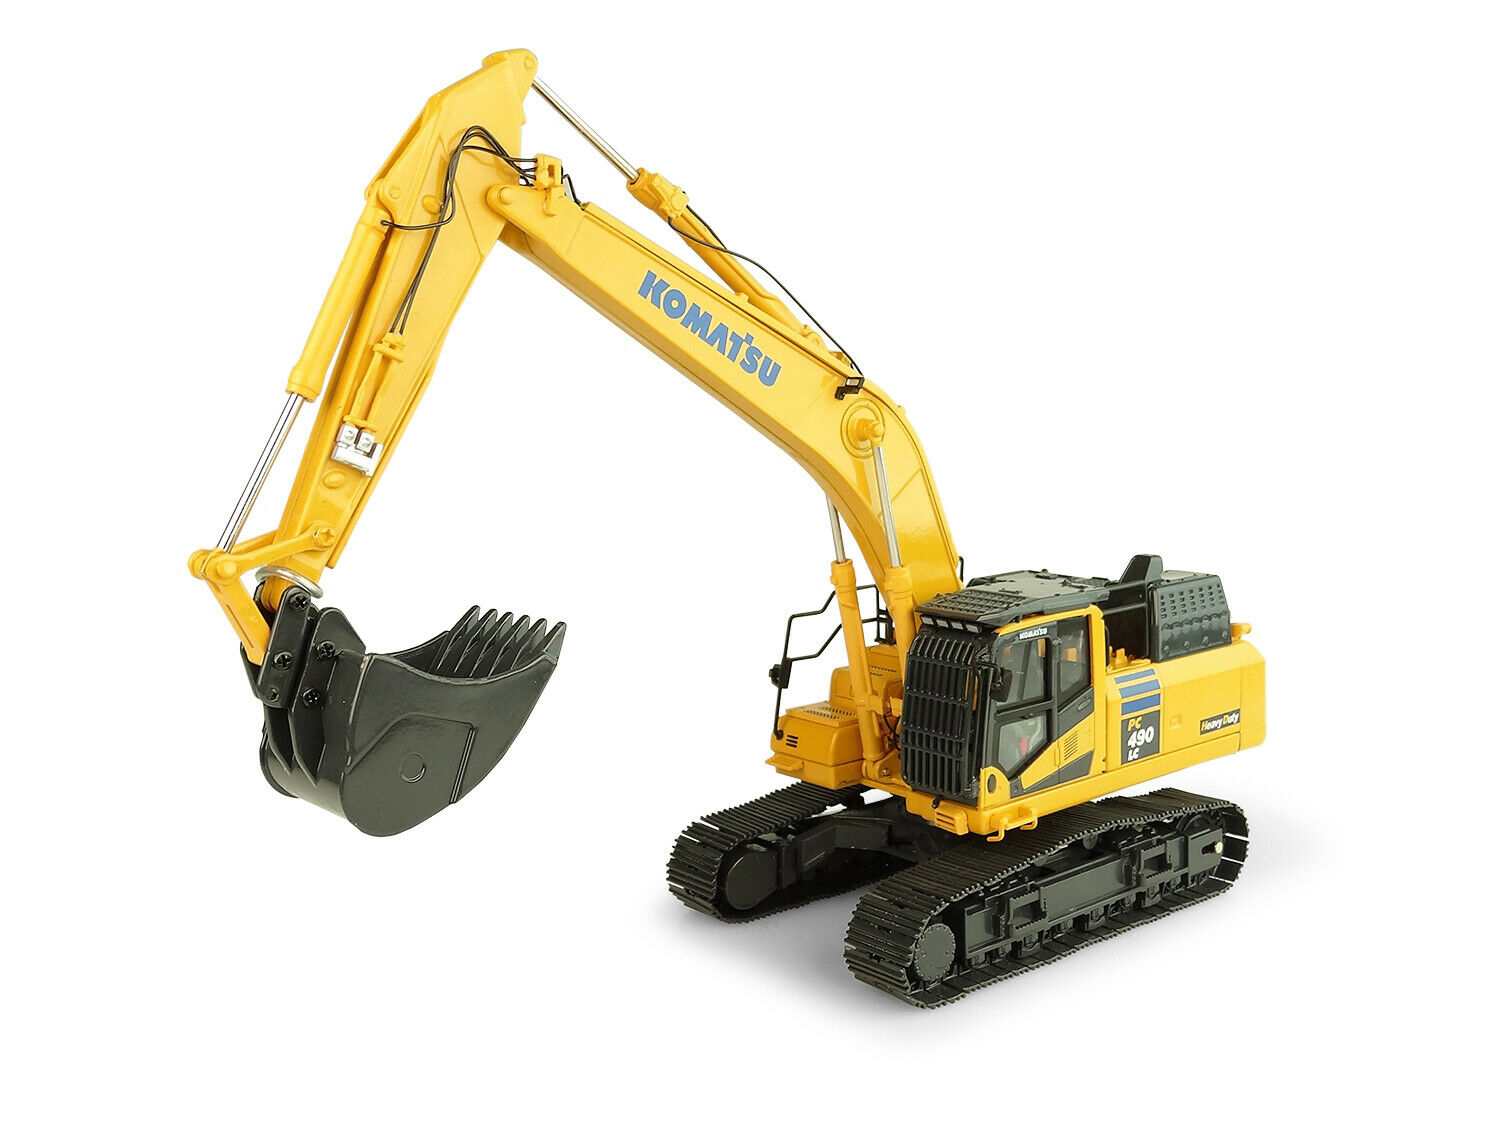 KOMATSU PC490LC-11 HEAVY DUTY EXCAVATOR  1 50 DIECAST BY UNIVERSAL HOBBIES UH8120  articles promotionnels